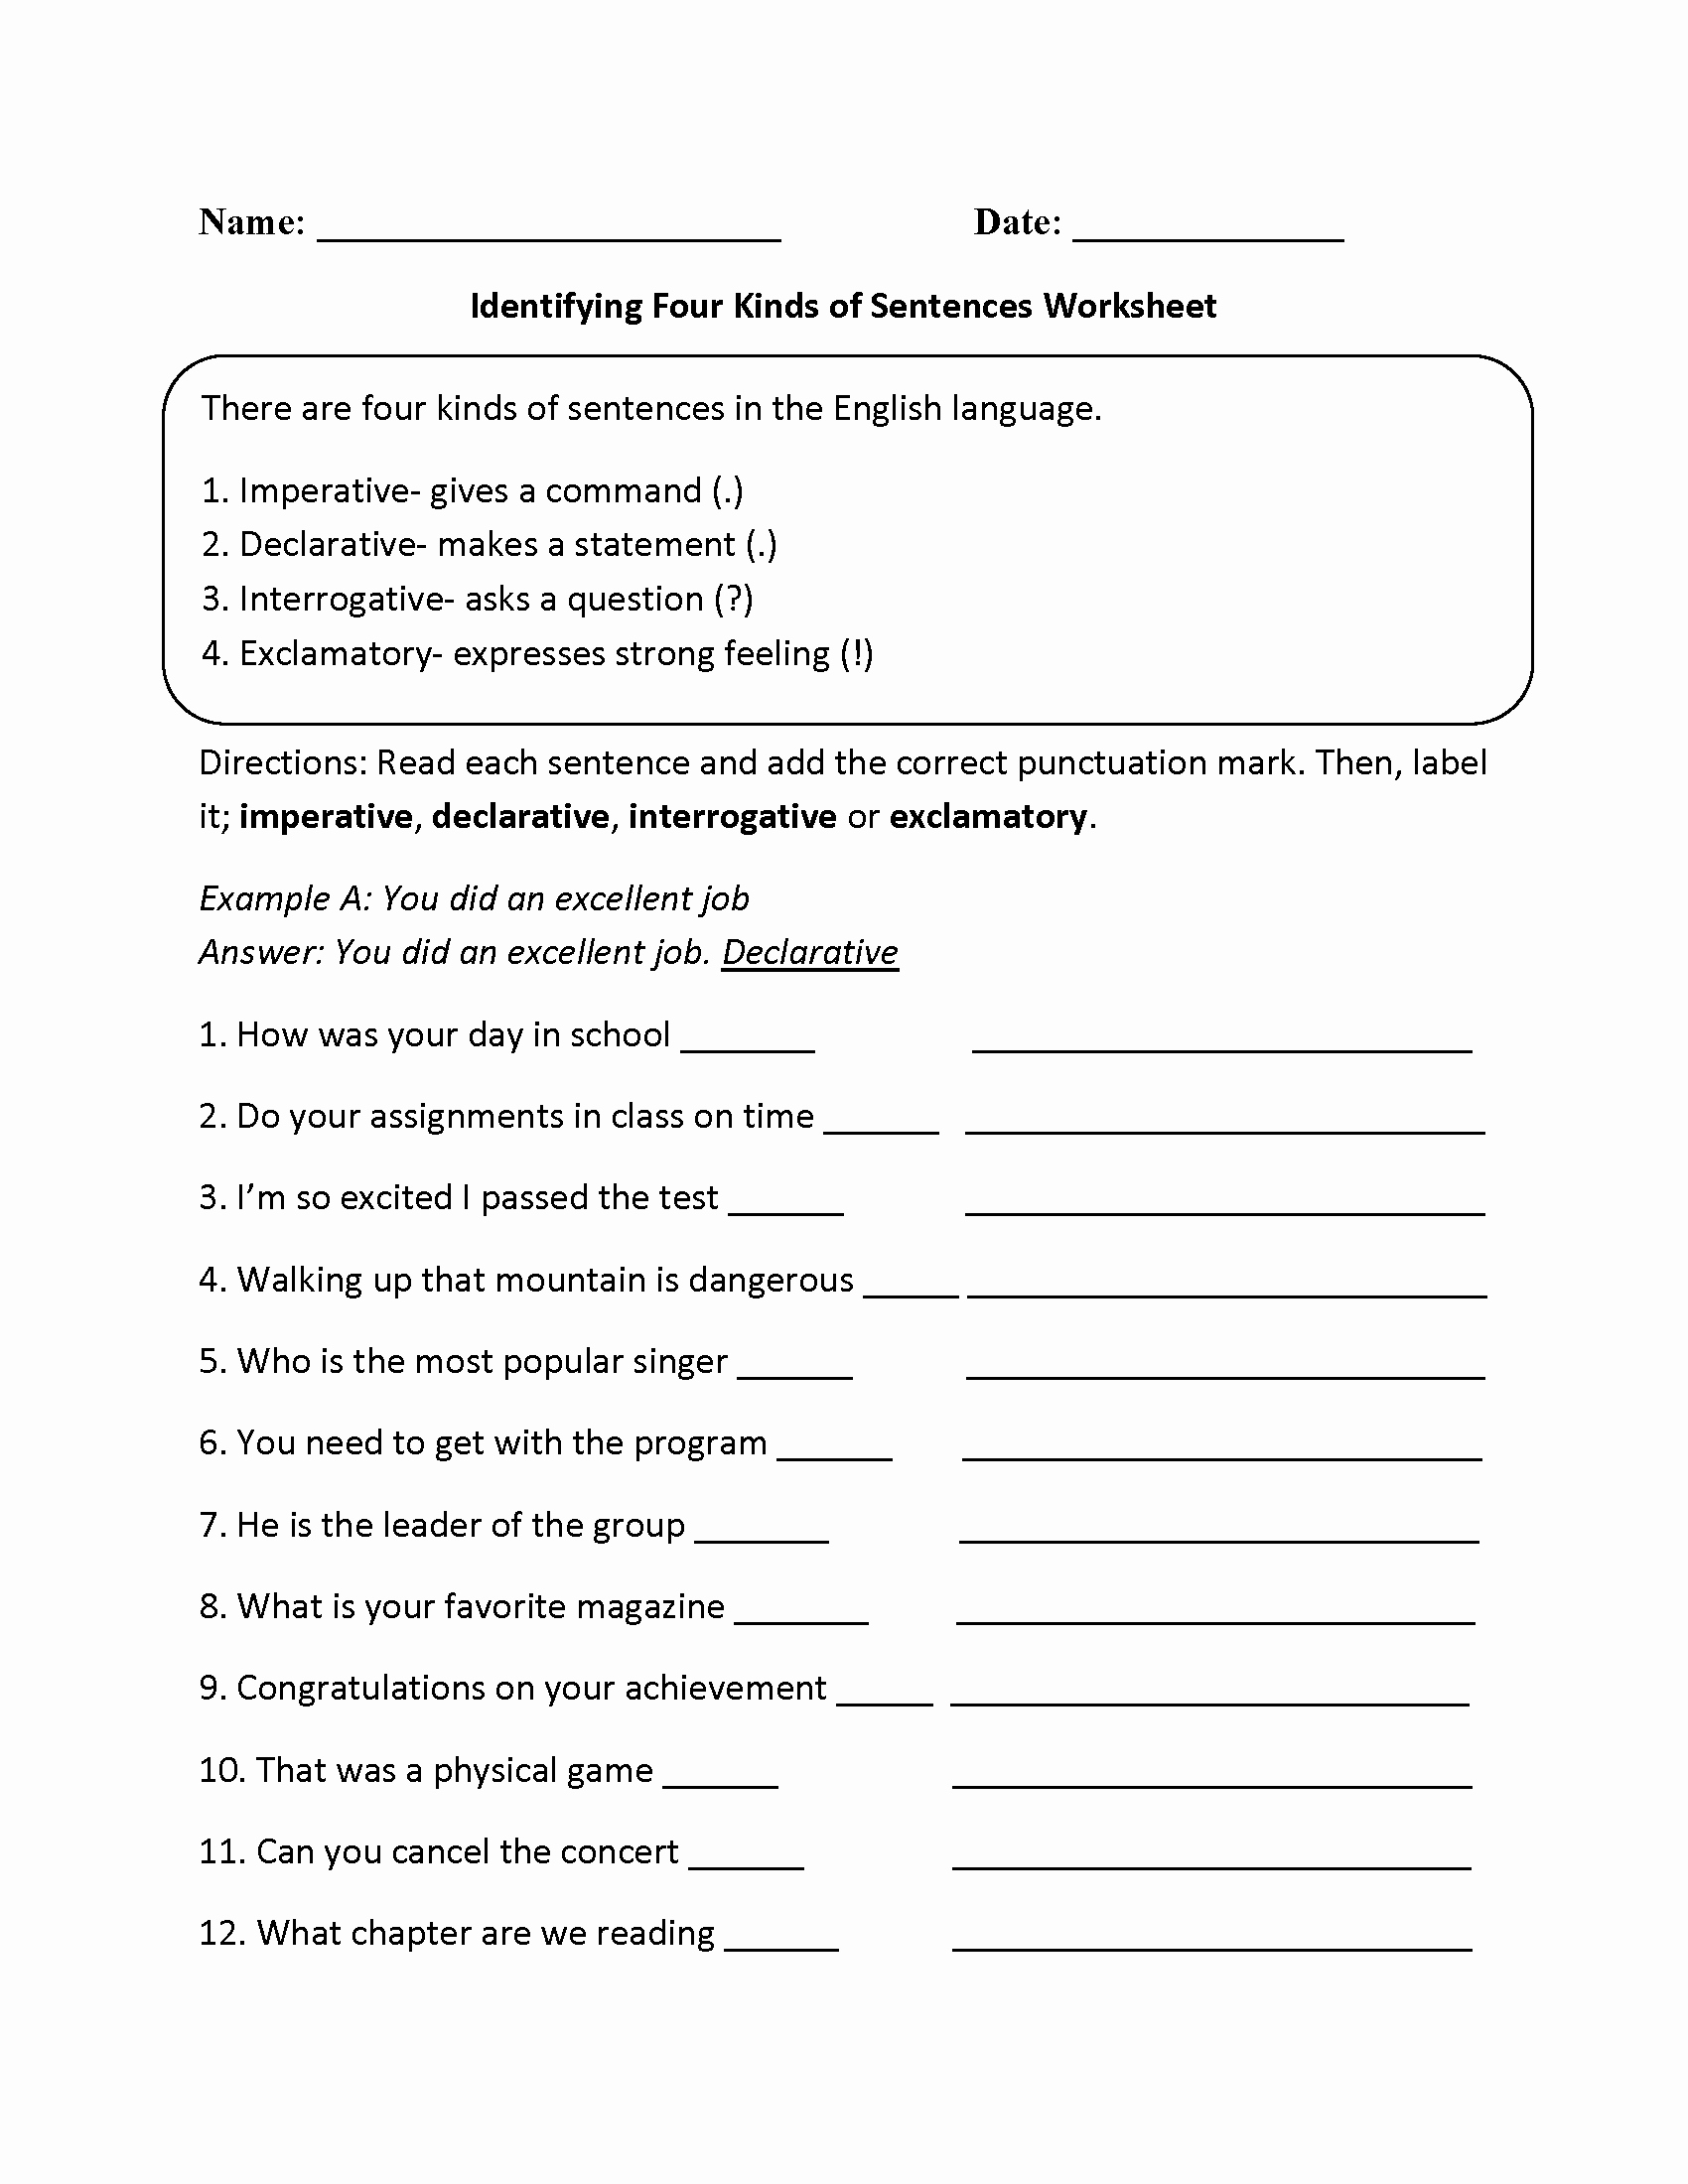 Types Of Sentences Worksheet Lovely Practicing Four Kinds Of Sentences Worksheet